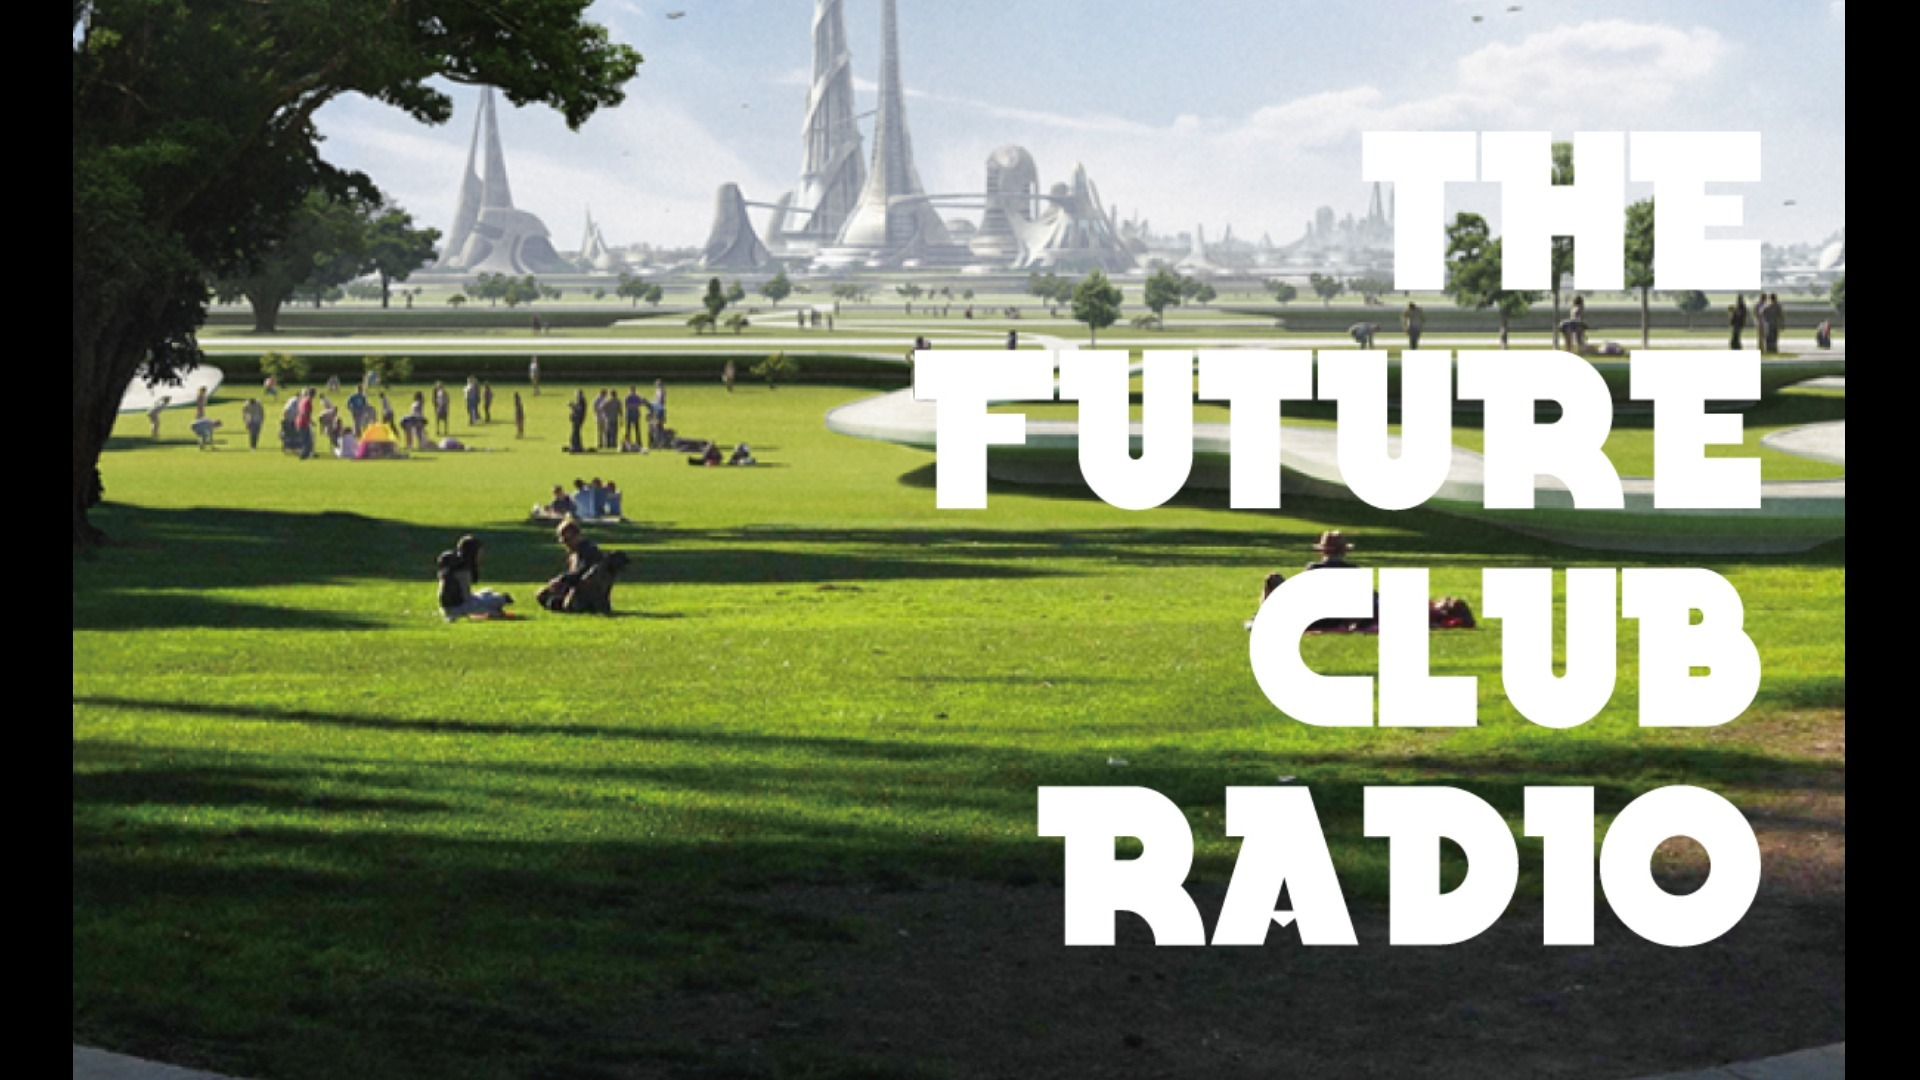 THE FUTURE CLUB RADIO 番外編 #002